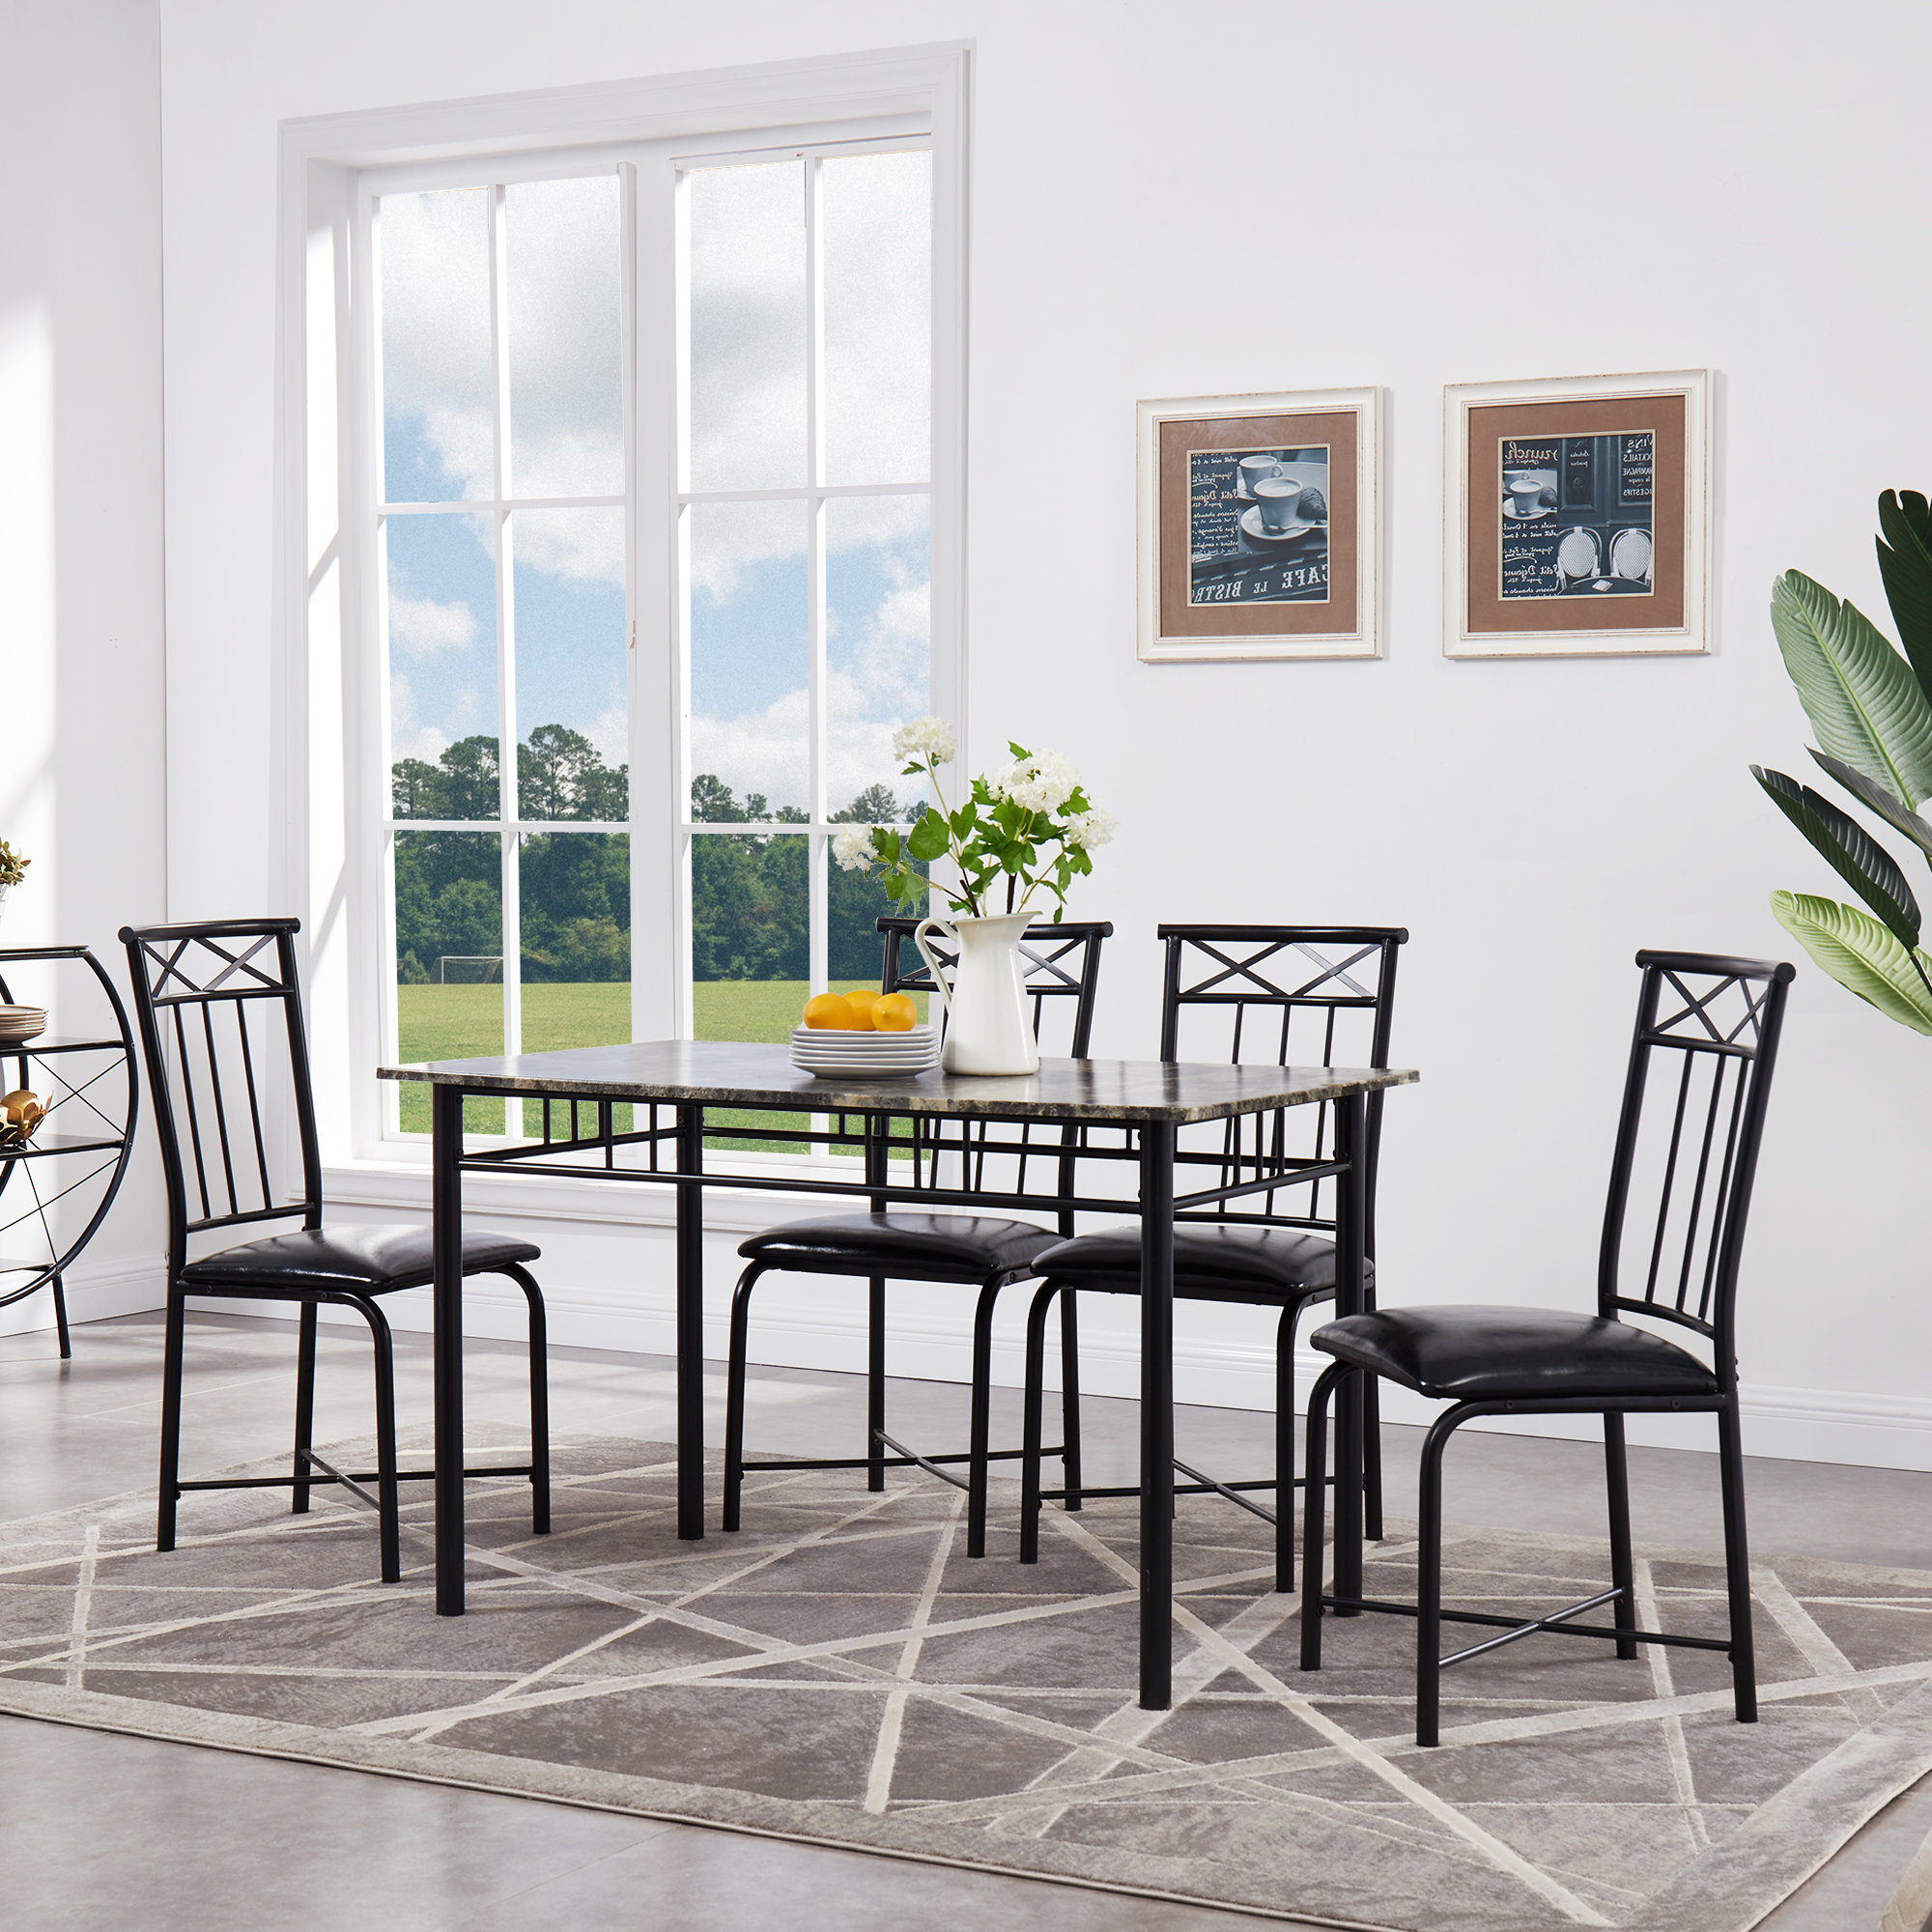 Lightle 5 Piece Breakfast Nook Dining Sets Throughout Preferred Register 5 Piece Dining Set (View 11 of 20)